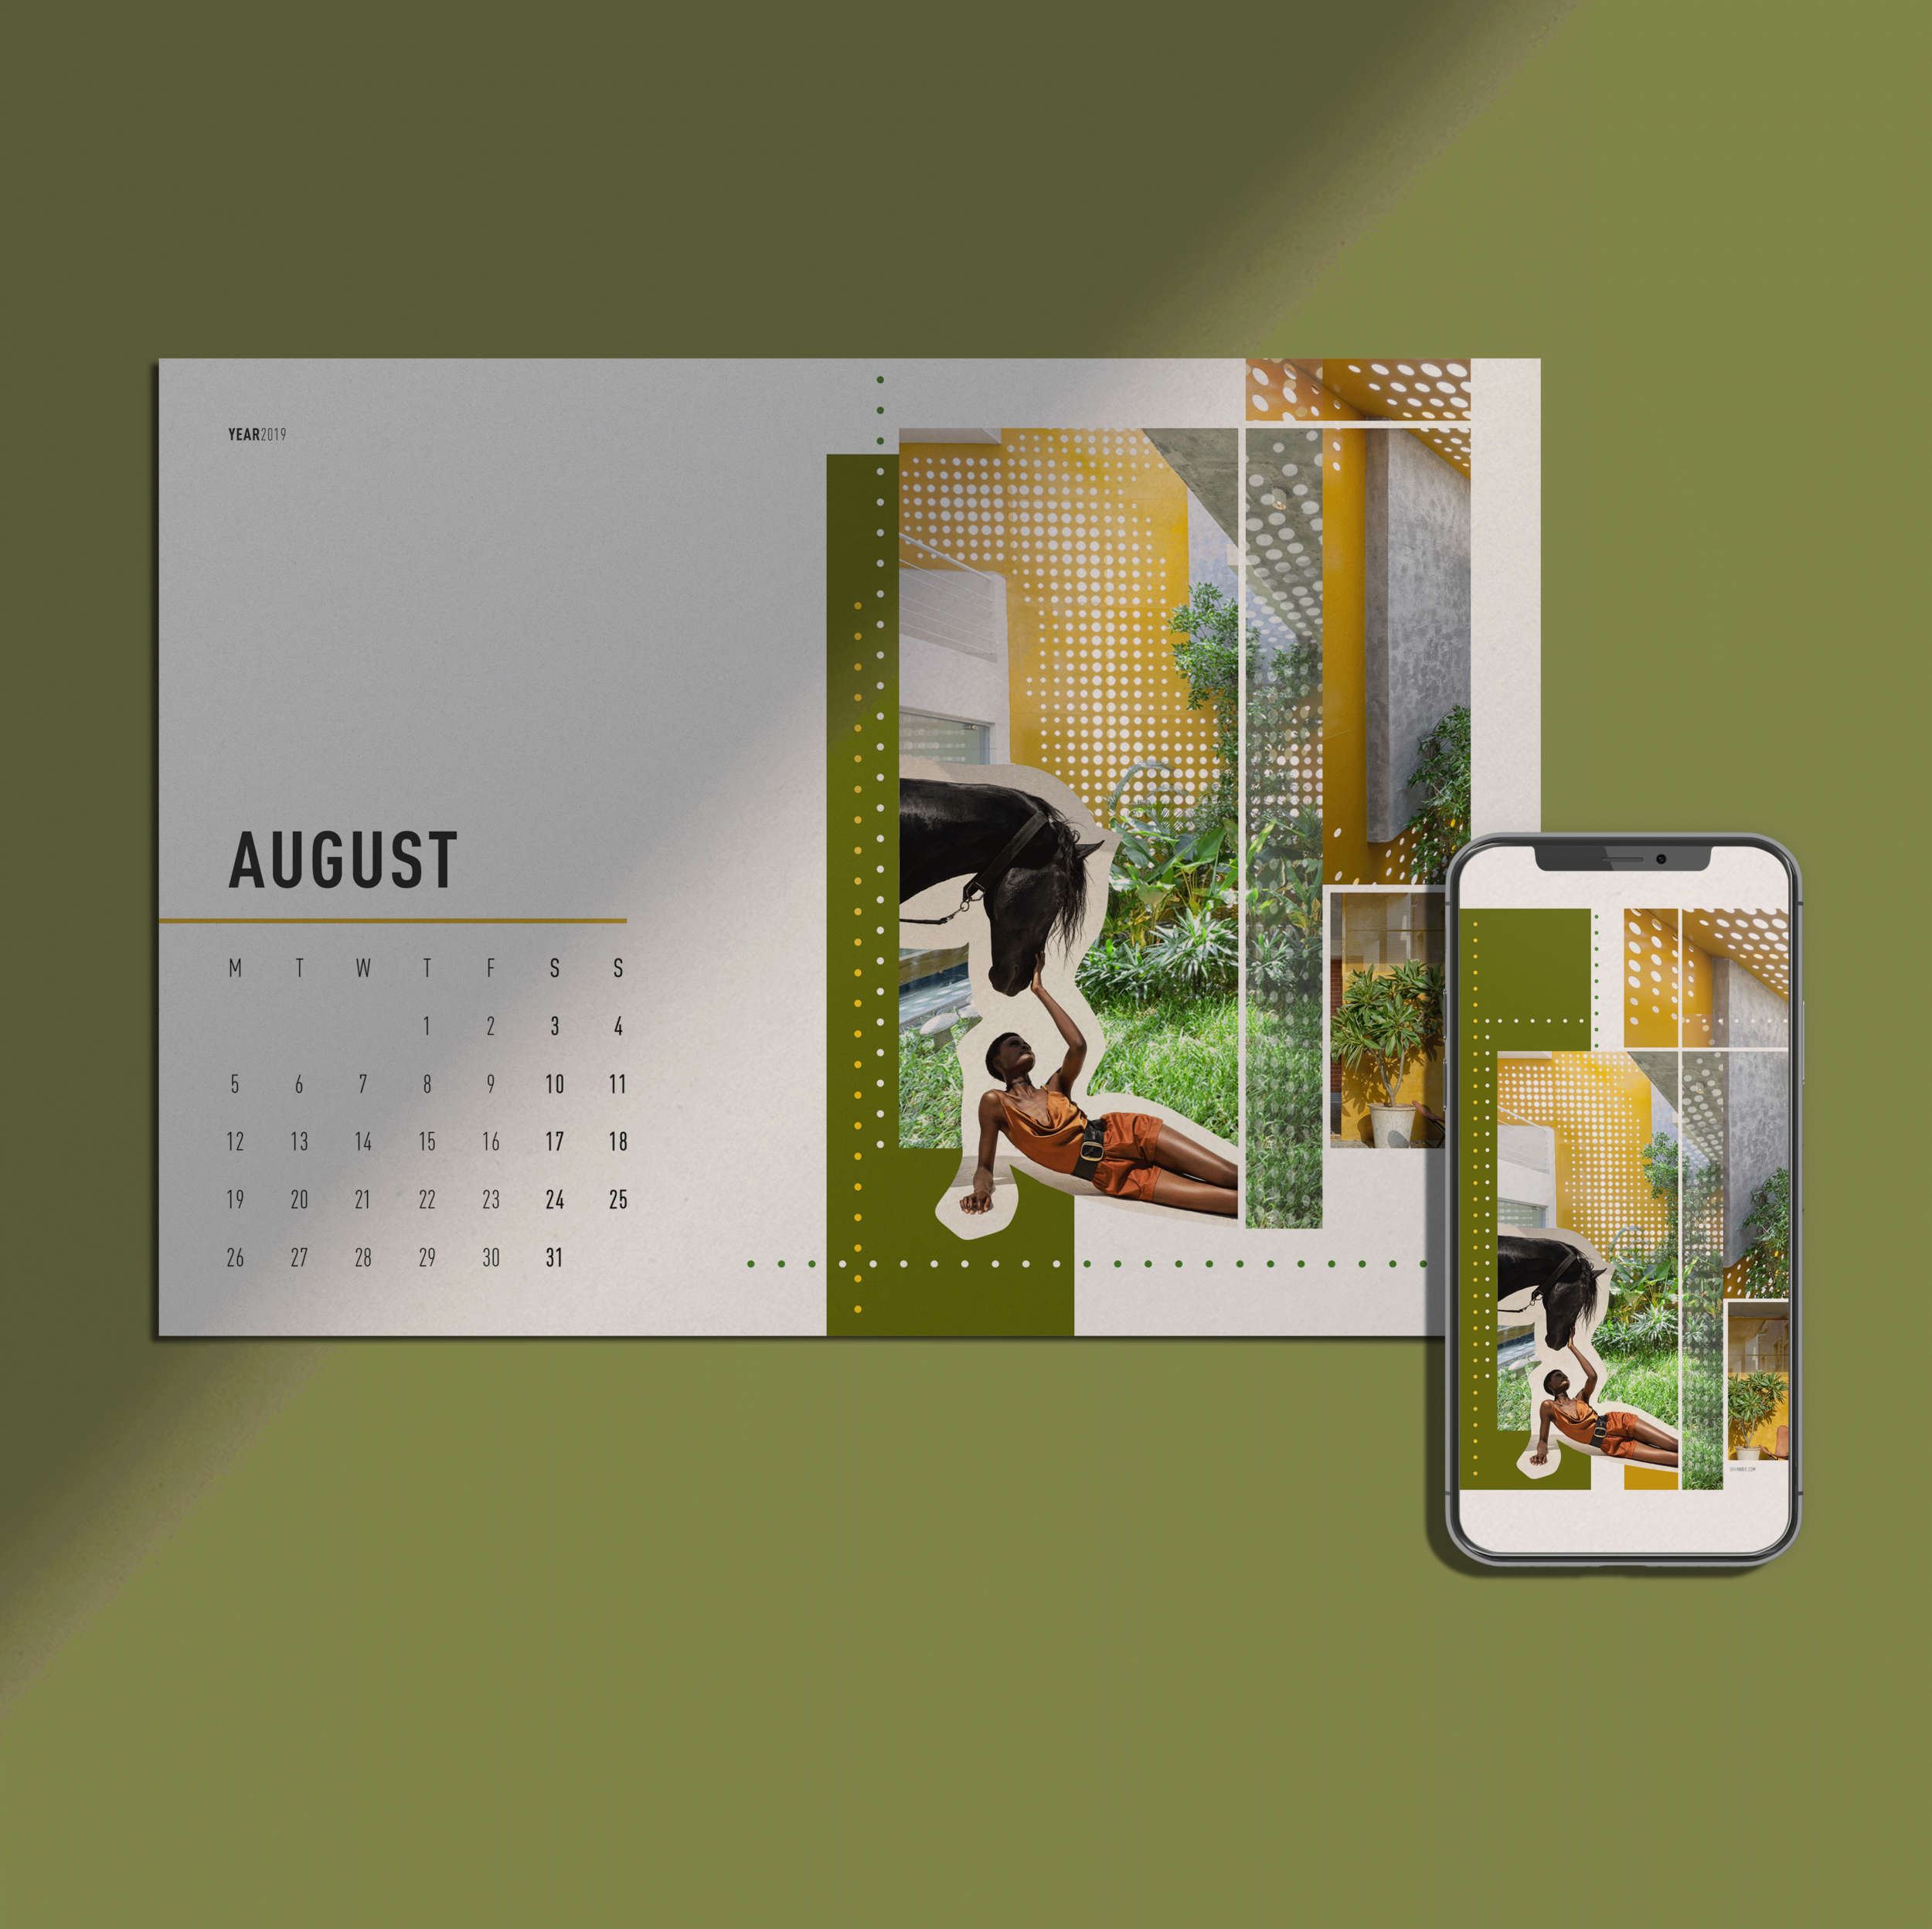 Monthly Calendar + Wallpaper /  AUGUST 2019    FREE DOWNLOAD